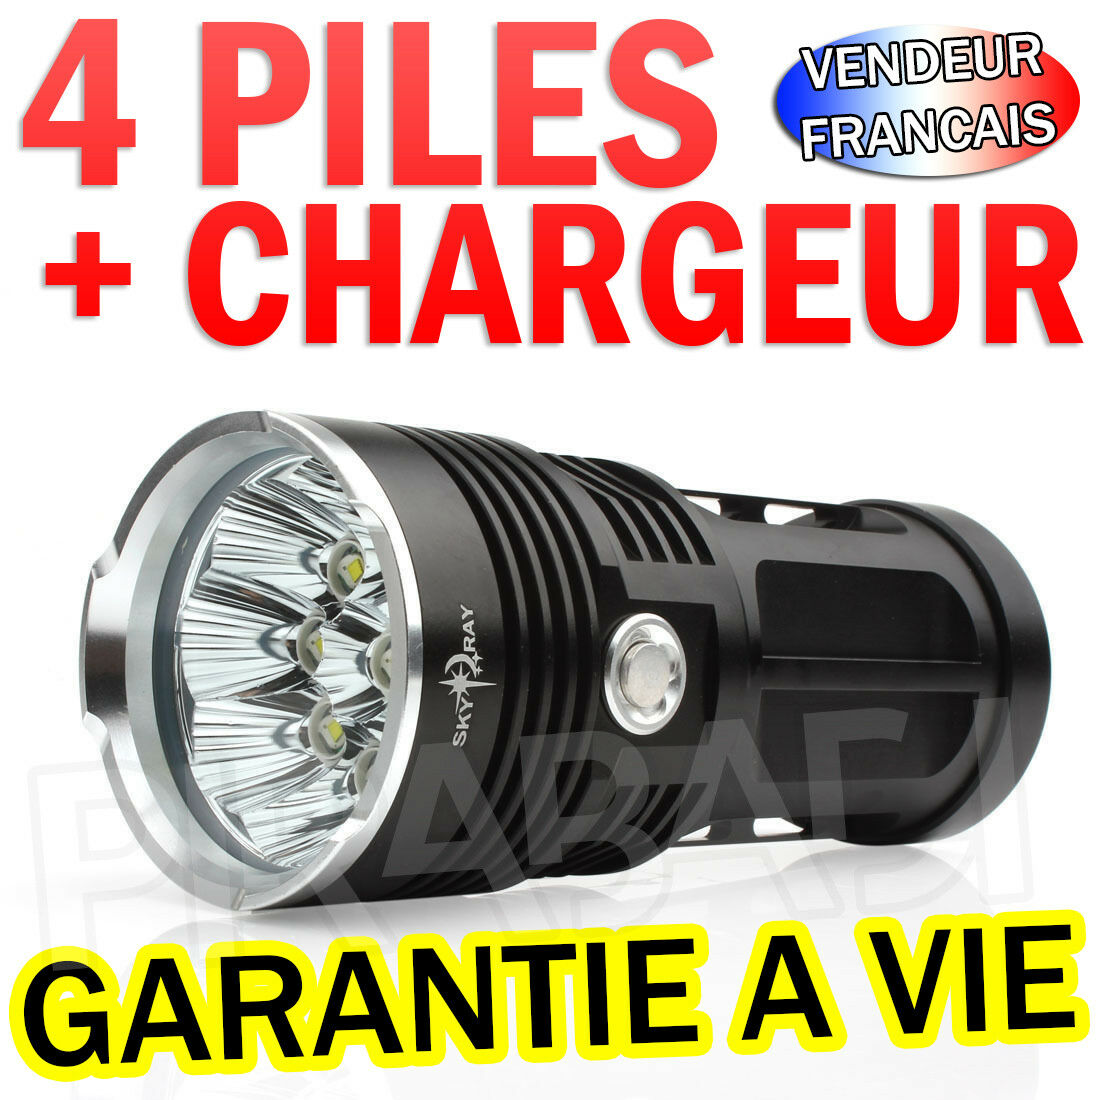 RARE - KIT COMPLET LAMPE TORCHE 25000 LUMENS 14 LED  FLASHLIGHT CREE T6 Réf 036  2018 latest